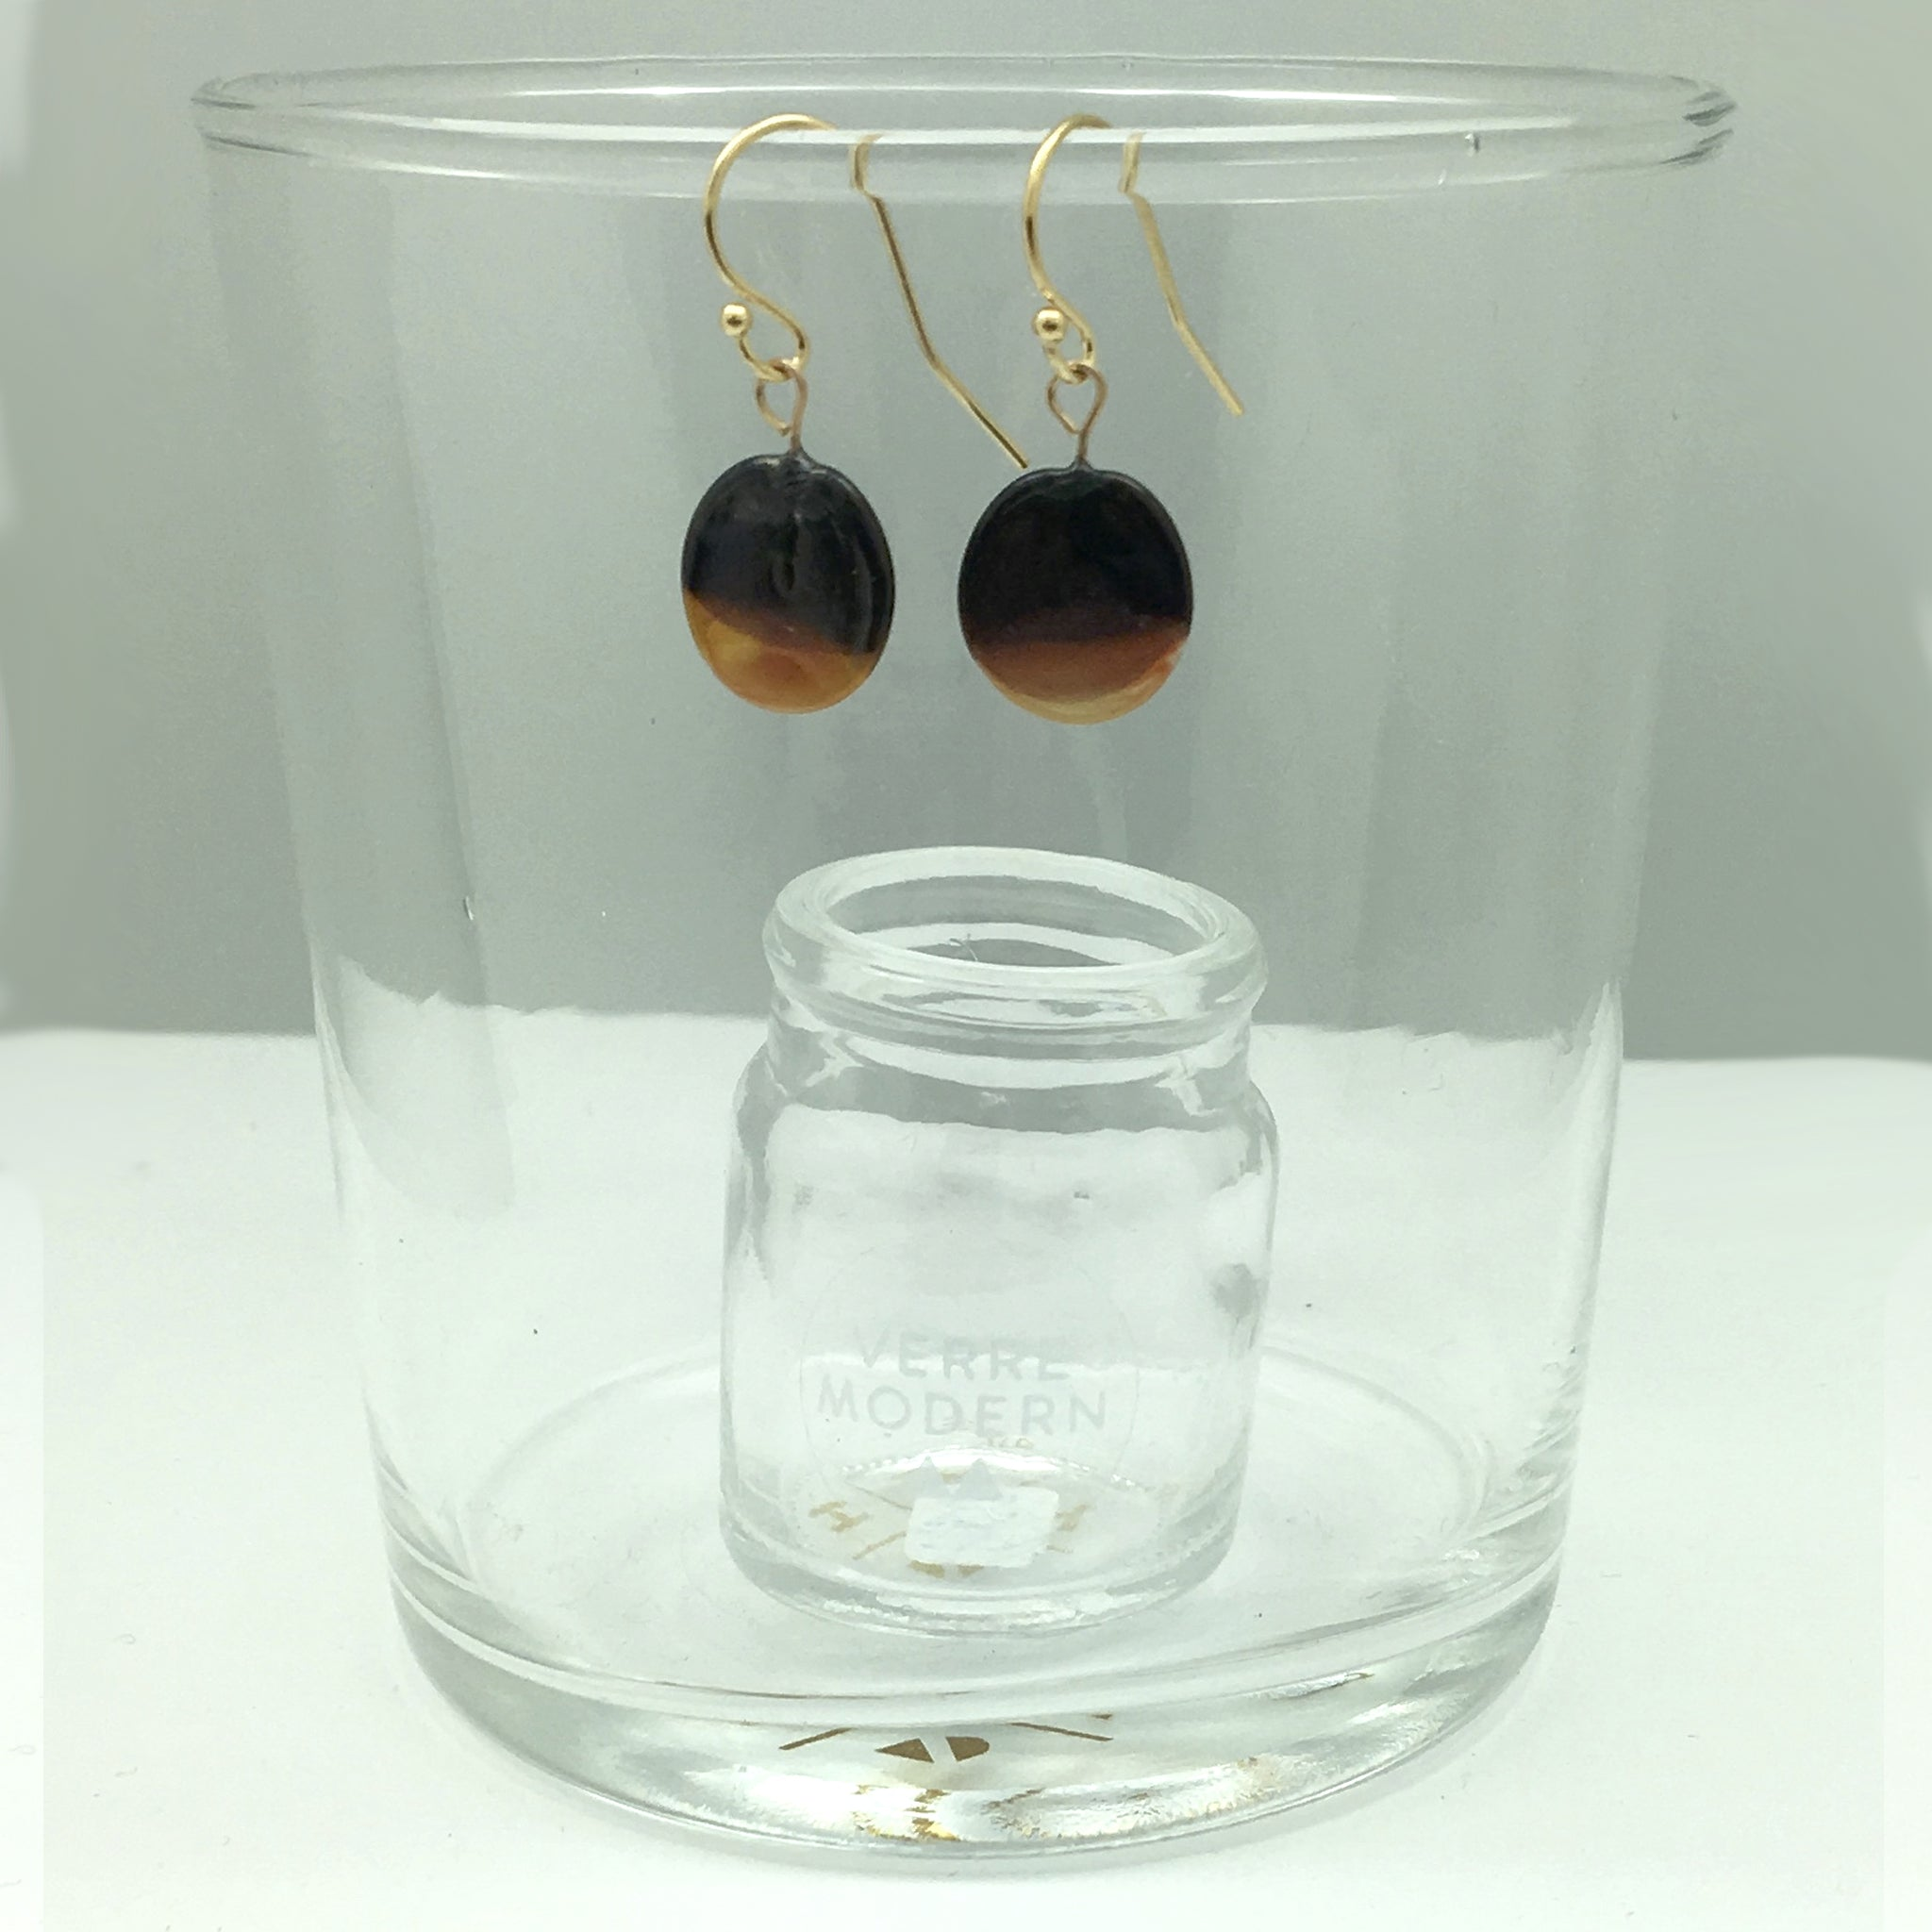 Verre Modern Marble glass jewelry